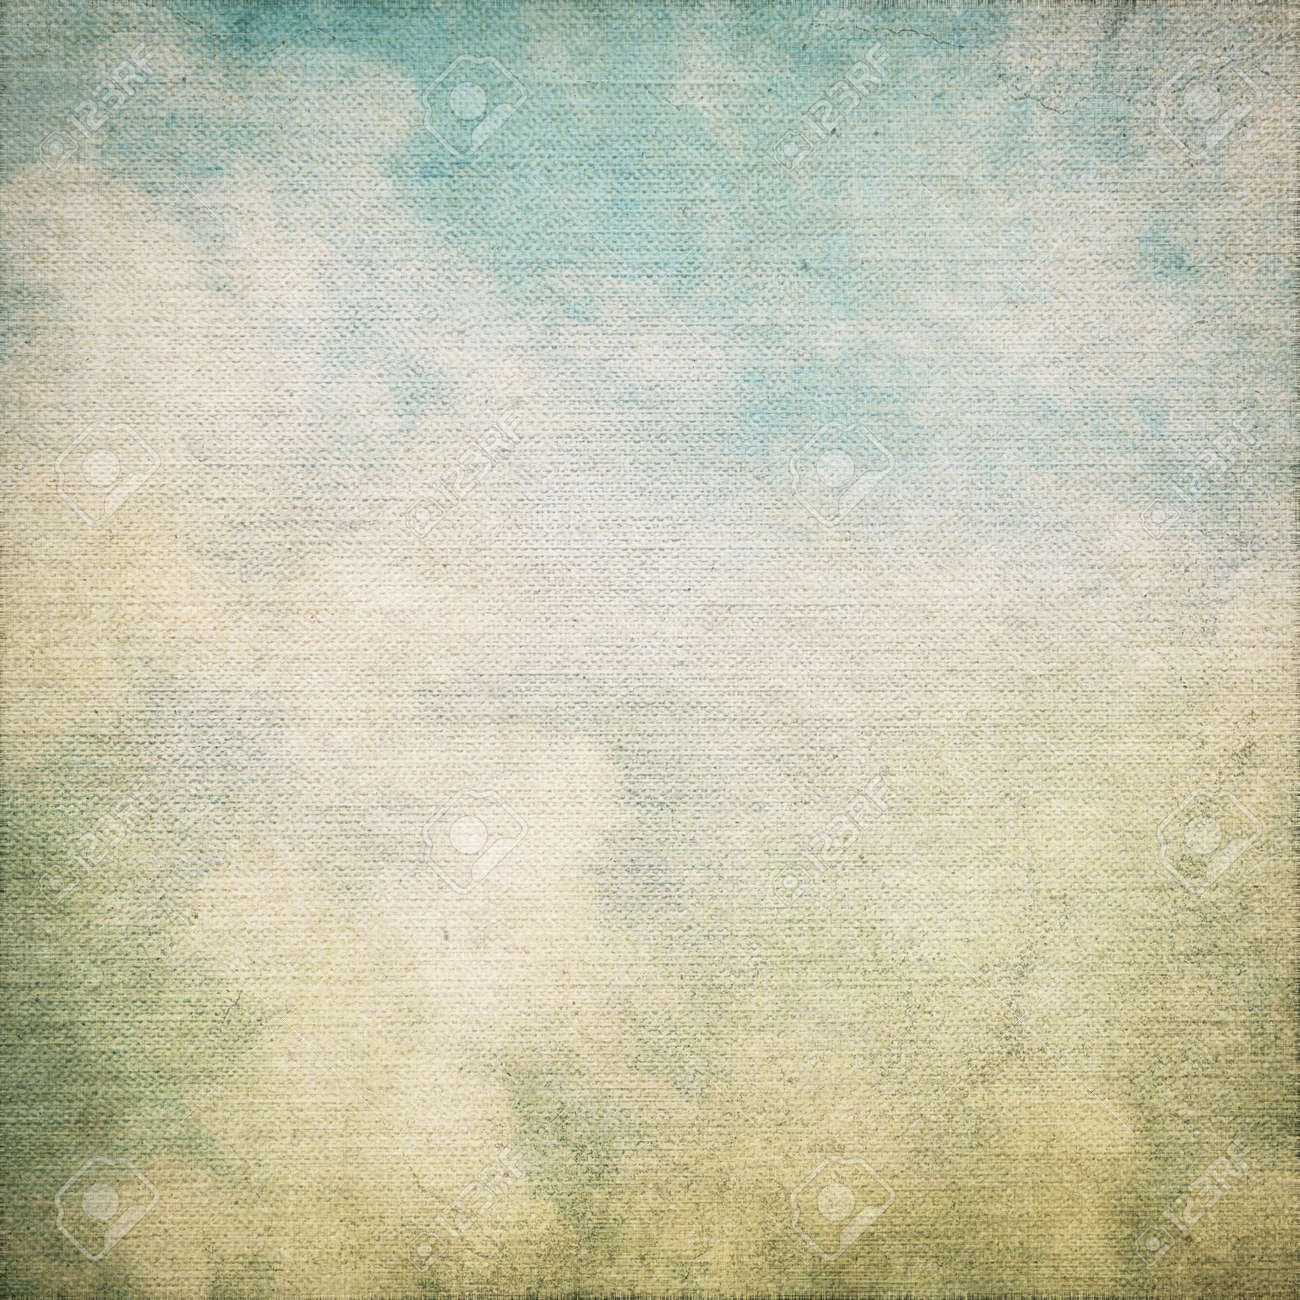 canvas texture grunge background with canvas texture and blue sky view abstract painting Stock Photo - 18685617